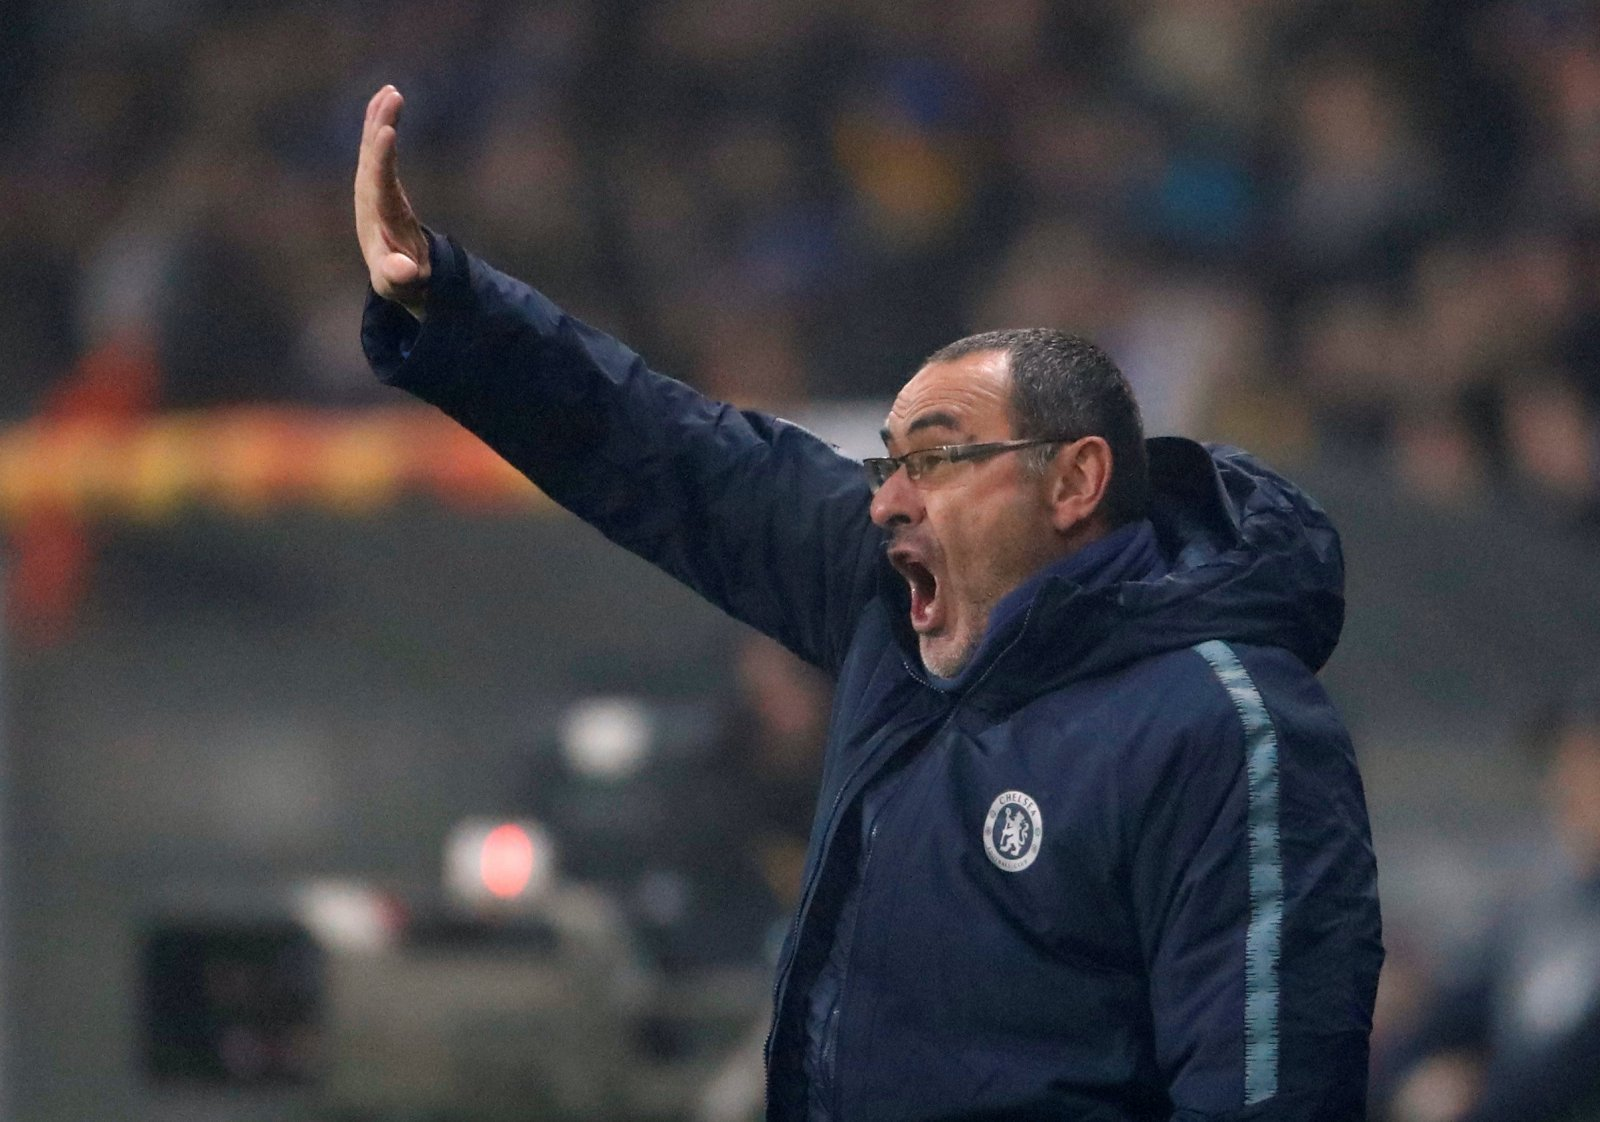 Chelsea fans take to Twitter to slam Sarri for Wolves comments